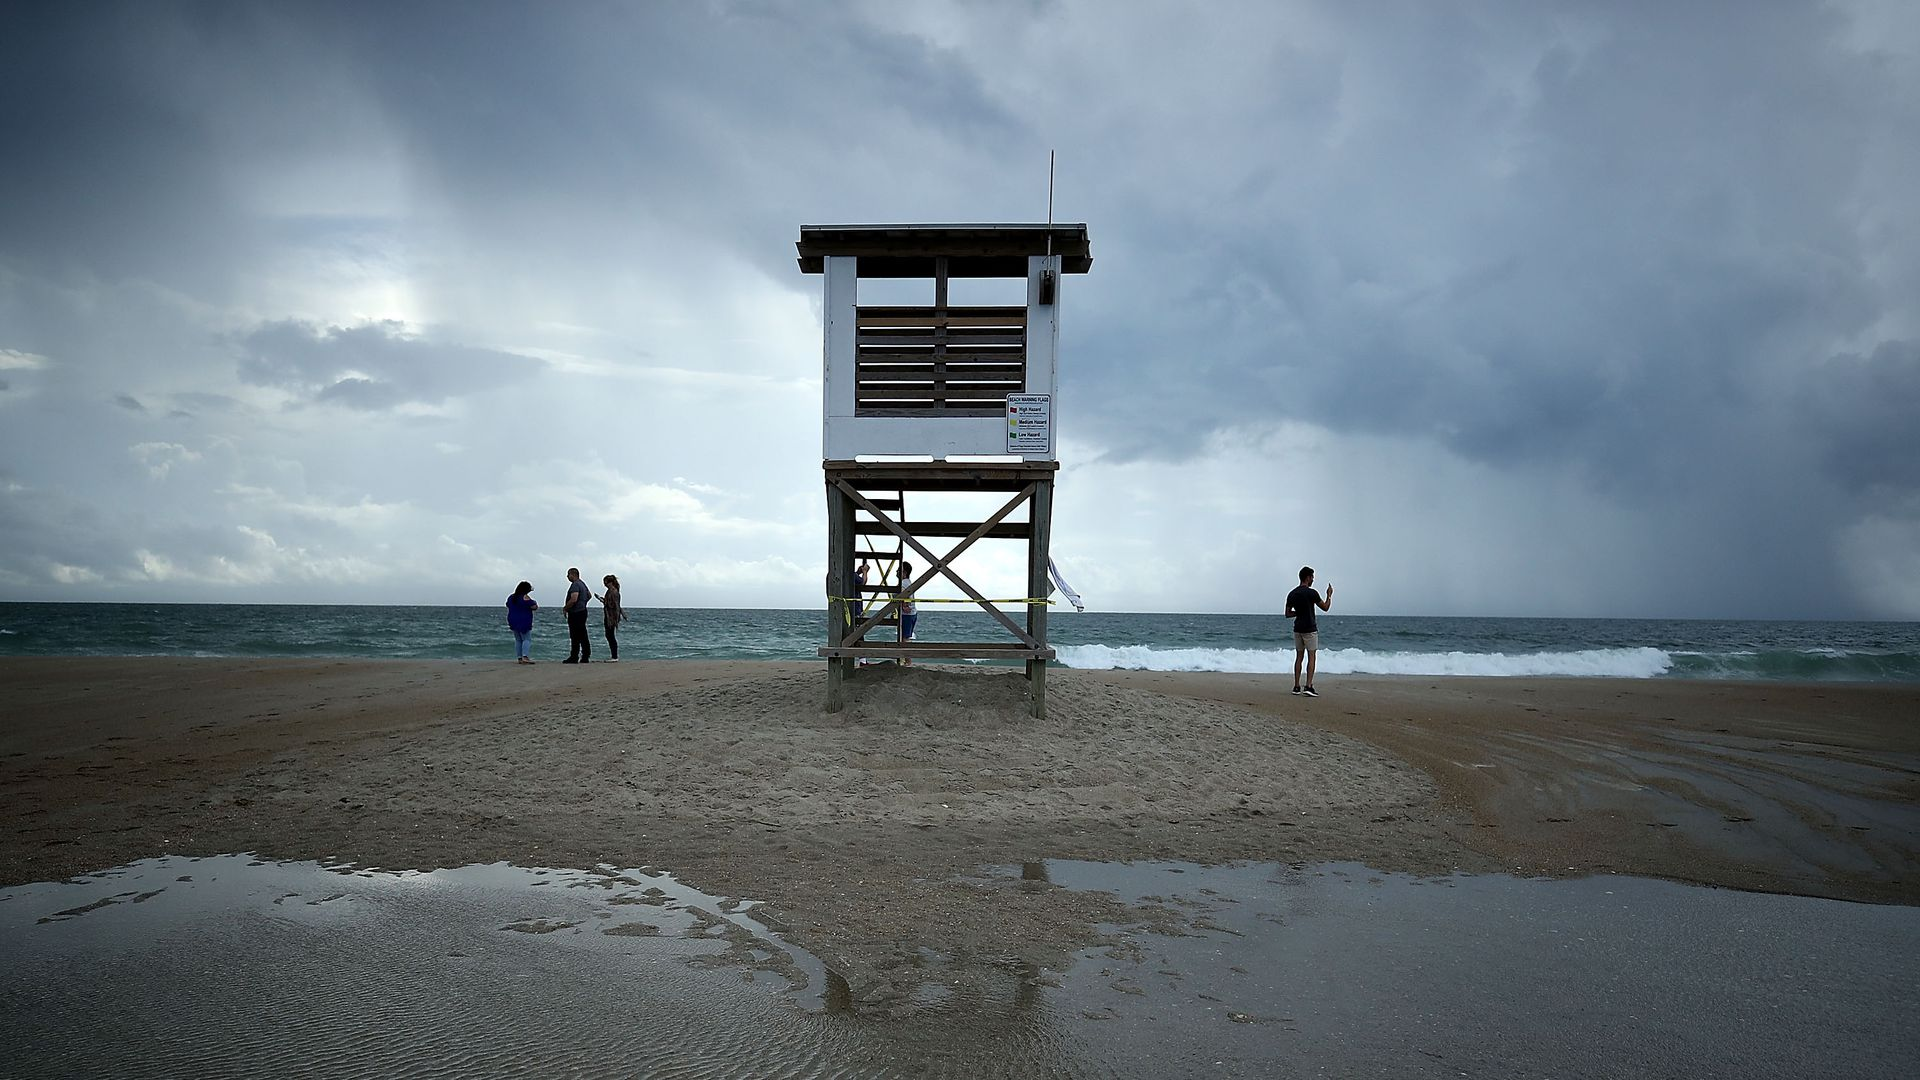 People stand near a lifeguard stand as Hurricane Florence approaches, on September 11, 2018 in Wrightsville Beach, North Carolina.